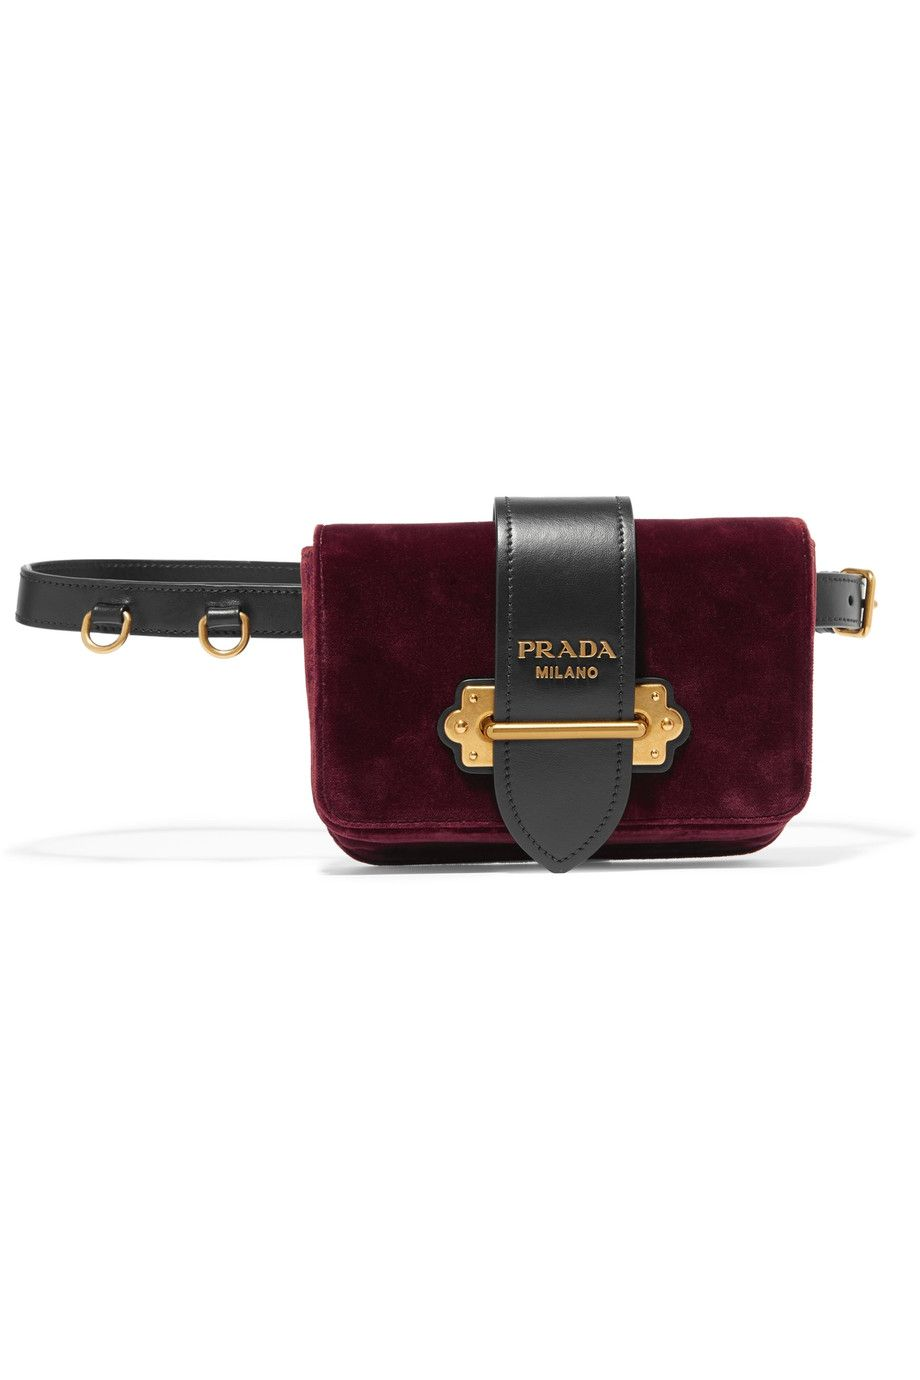 22c29d5829ff 9 Bum Bags That Are So Chic They're Not Just For Festival Season - Prada  Leather Trimmed Velvet Belt Bag from InStyle.com